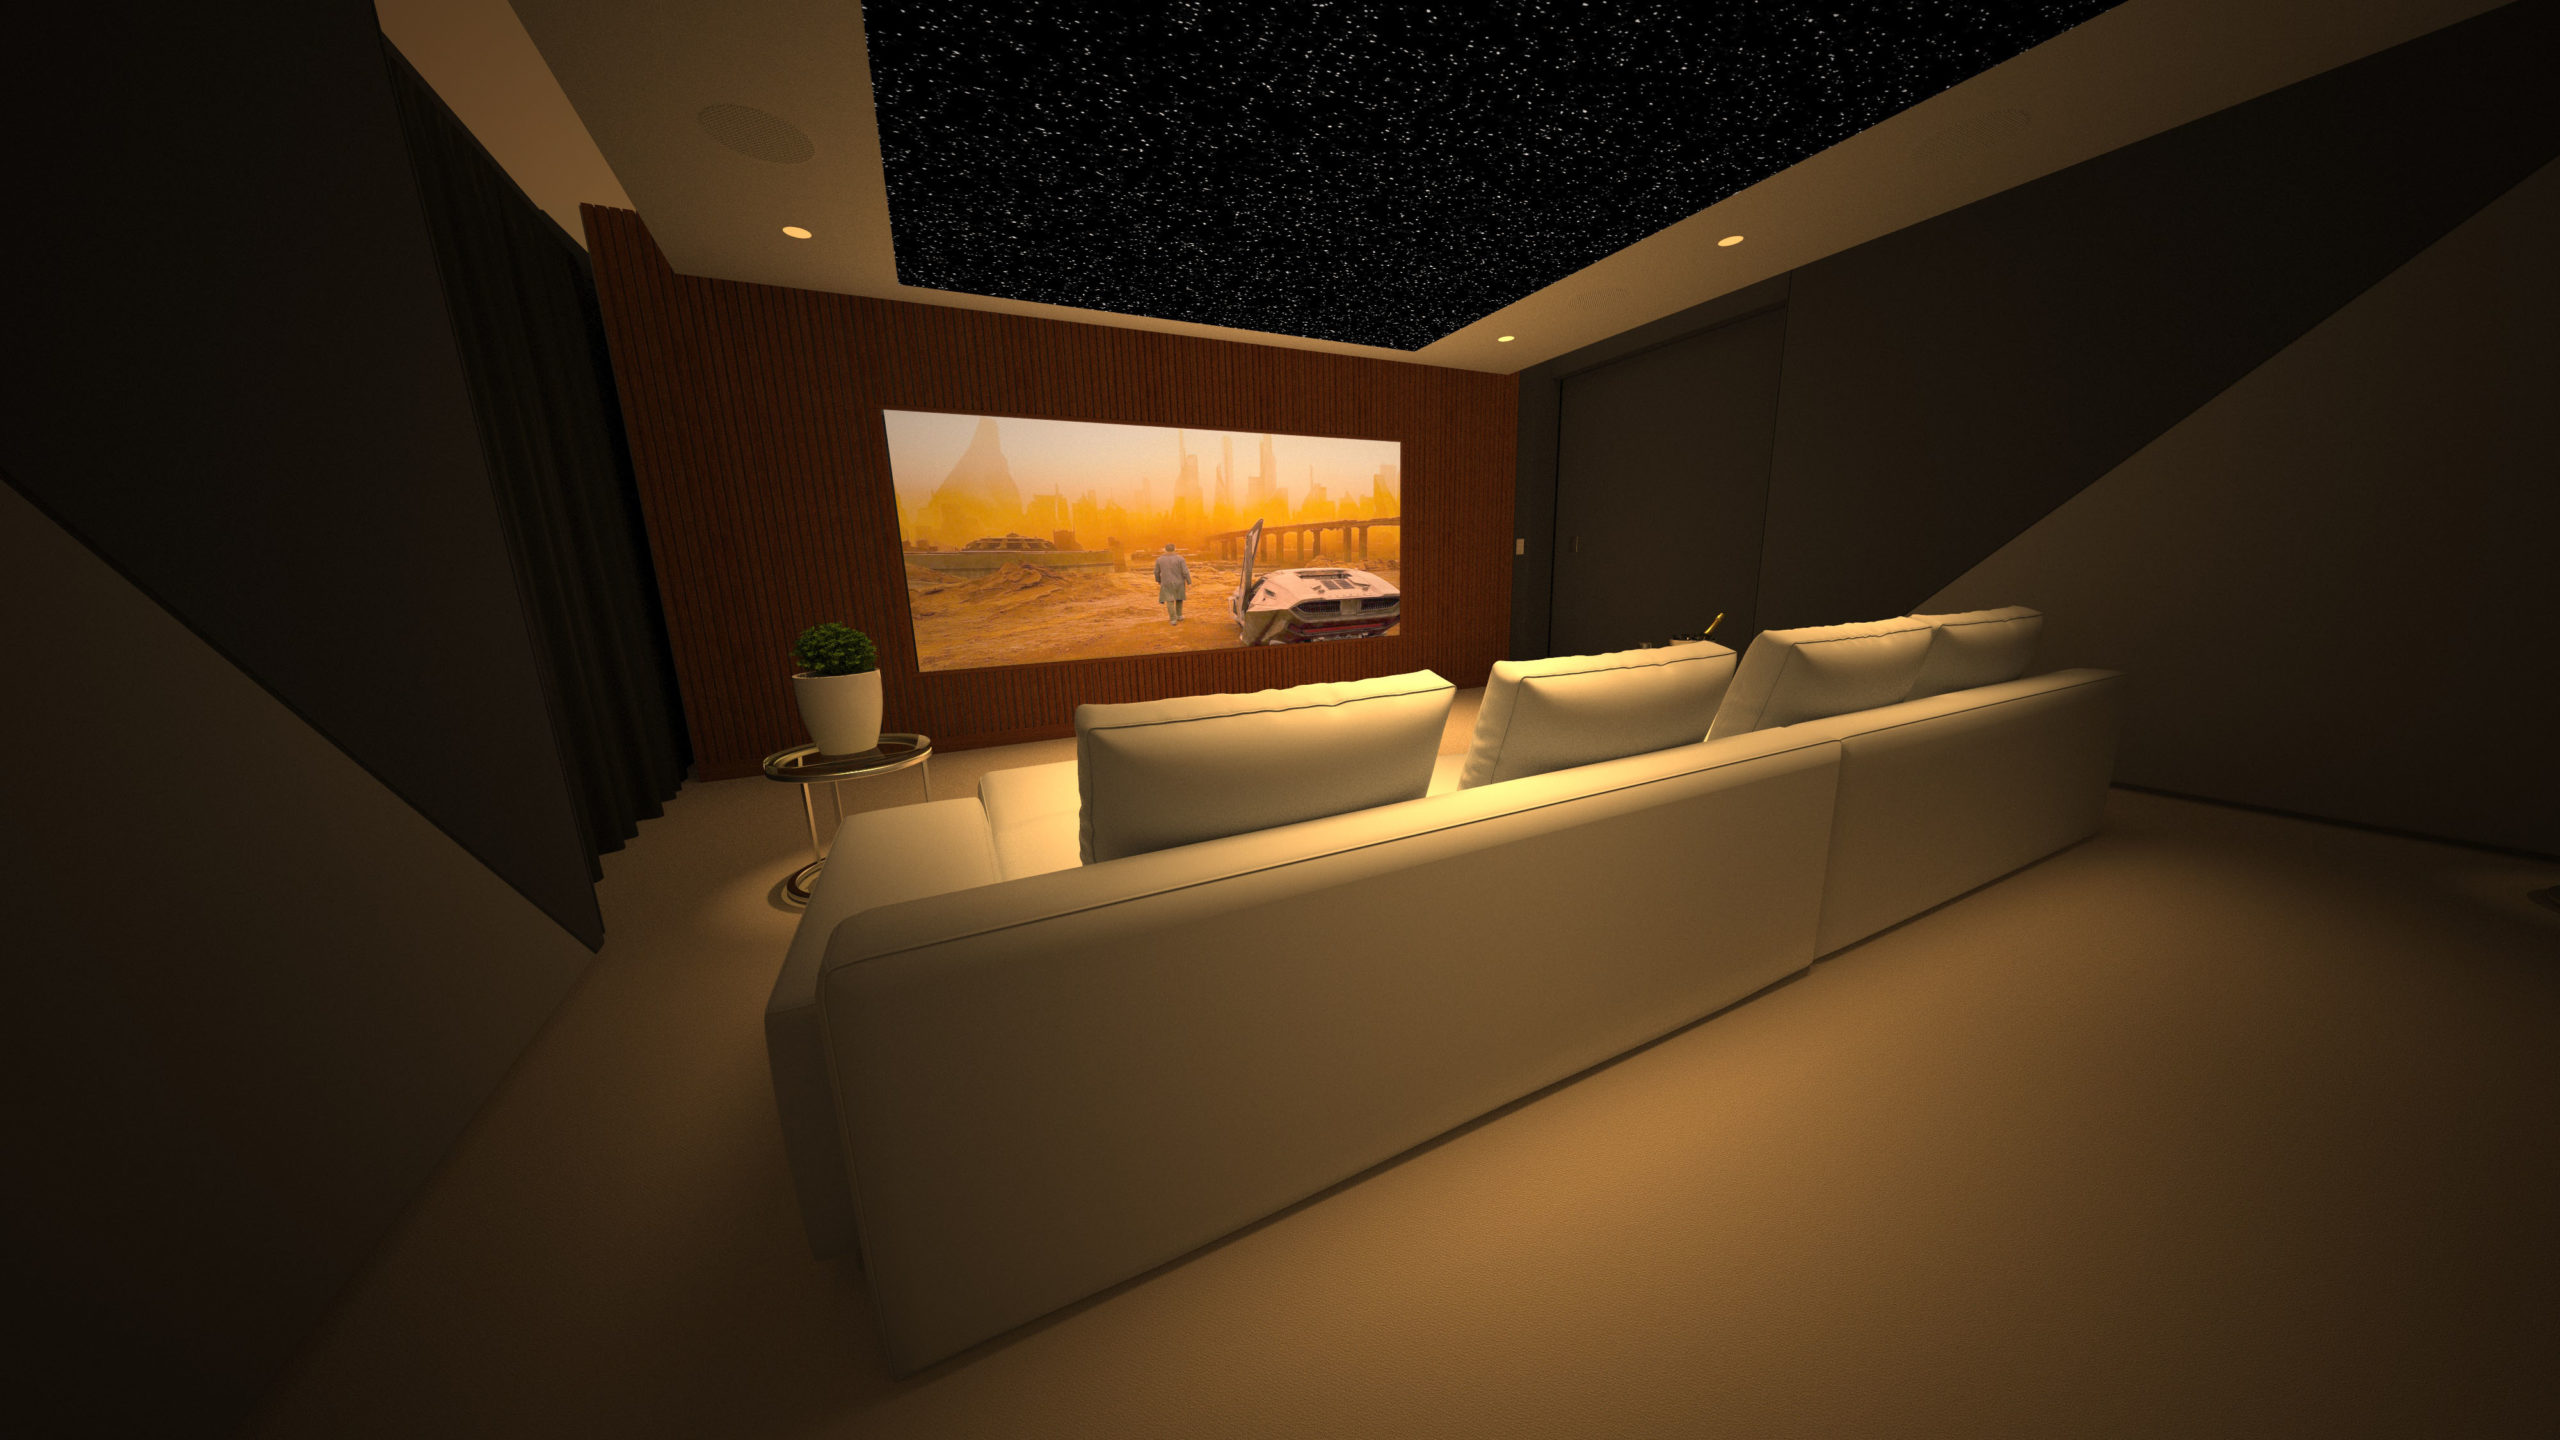 Paco home cinema on screen